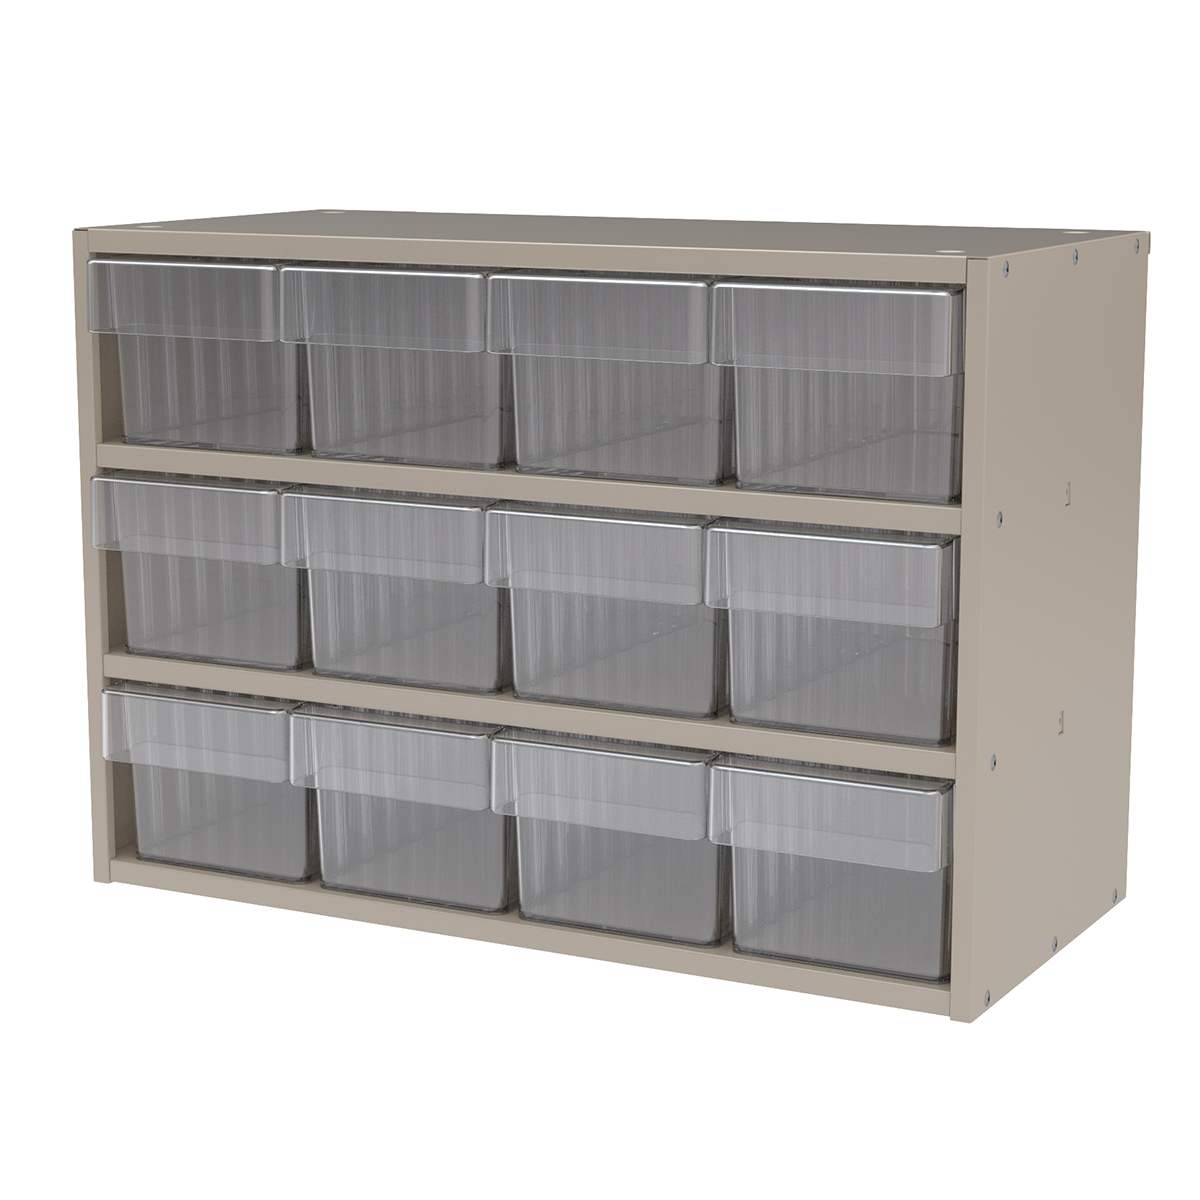 Item DISCONTINUED by Manufacturer.  Modular Cabinet, 23x11x16, 12 Drawers, Putty/Clear (AD2311P62CRY).  This item sold in carton quantities of 1.